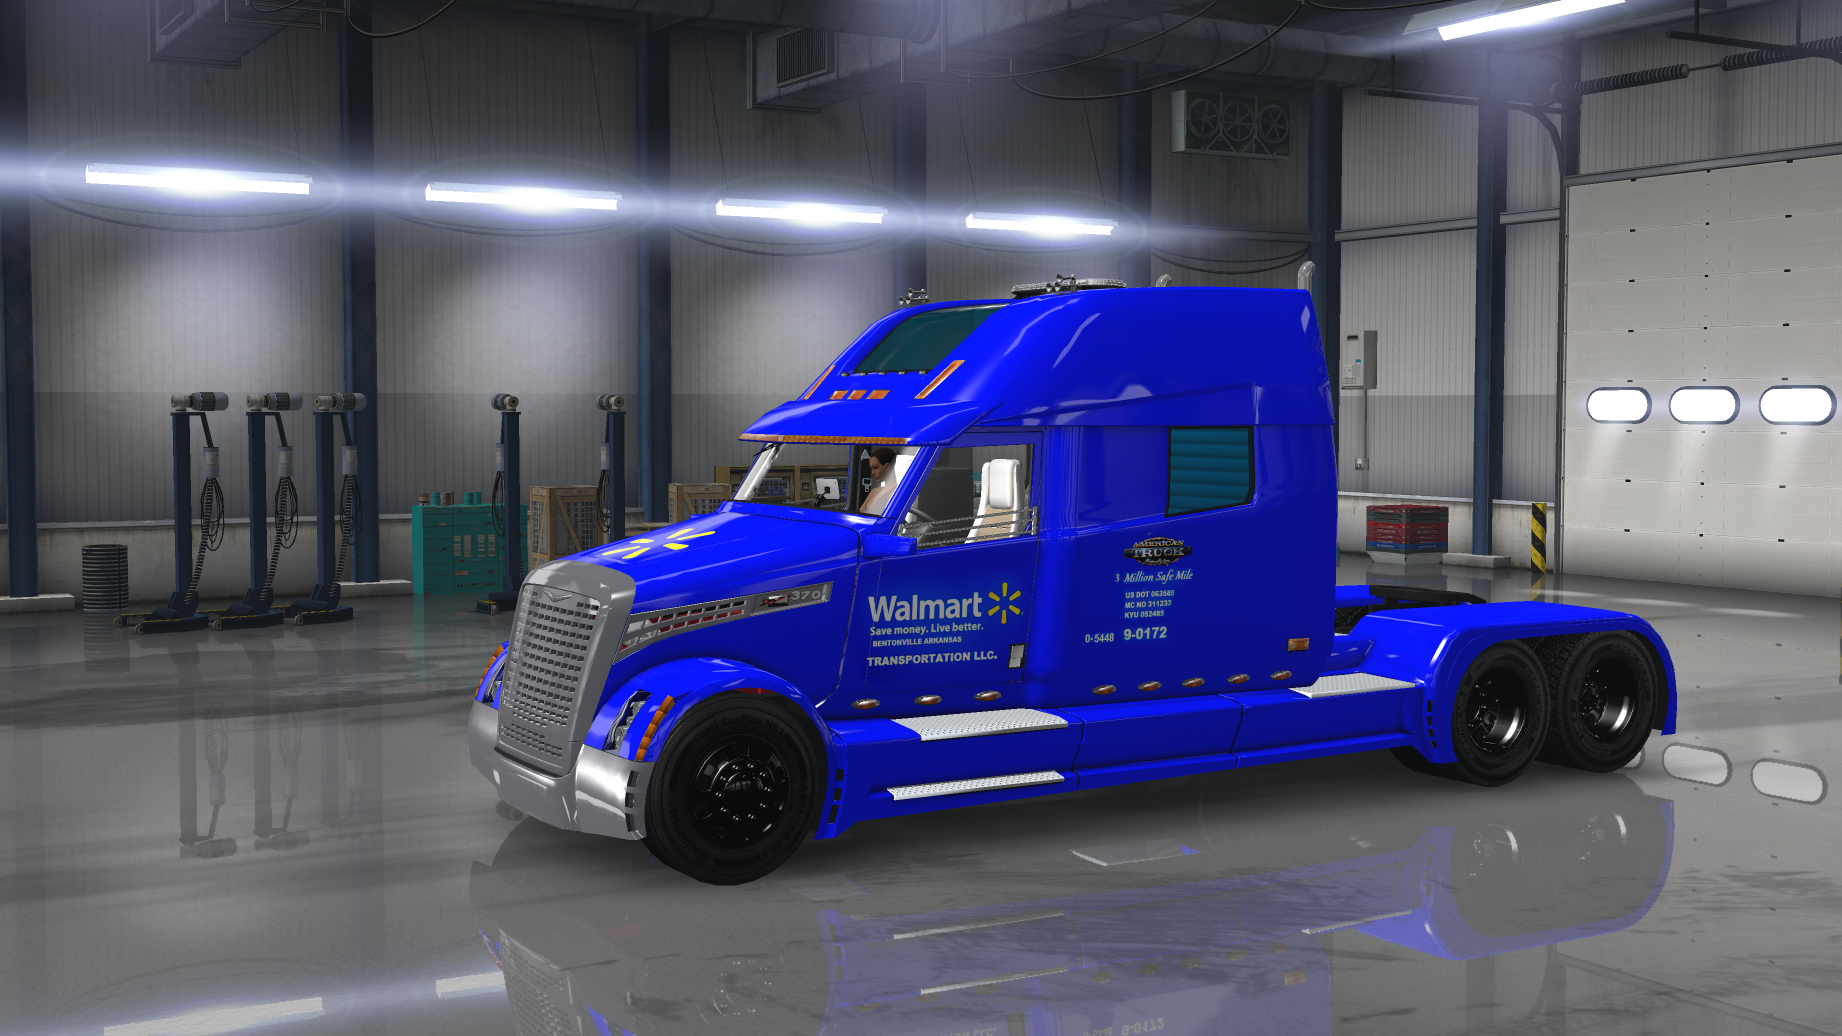 walmart 3 m s m concept 2020 truck ats mod american truck simulator mod. Black Bedroom Furniture Sets. Home Design Ideas